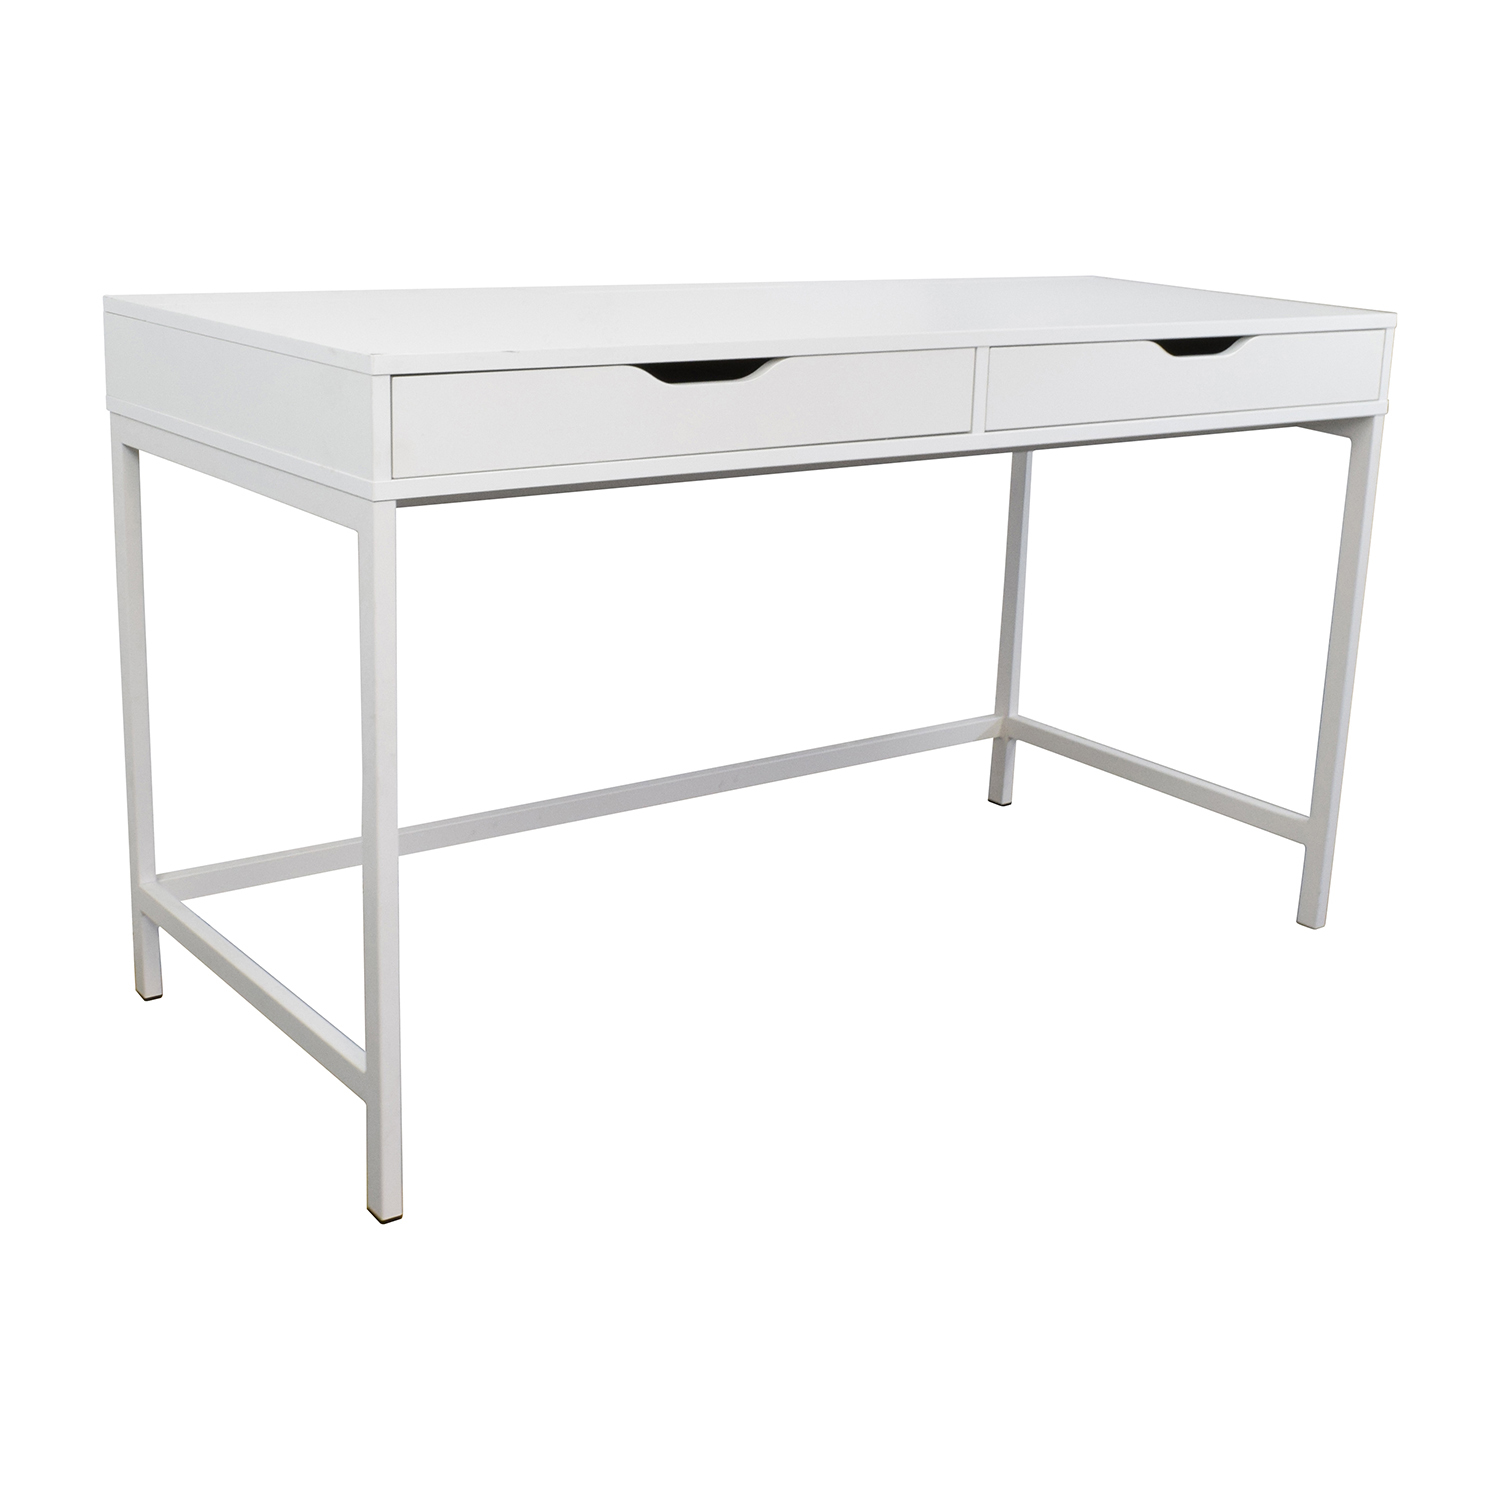 table bureau ikea hilver table ikea linnmon finnvard table gray beech 59x29 1 2 ikea bekant. Black Bedroom Furniture Sets. Home Design Ideas